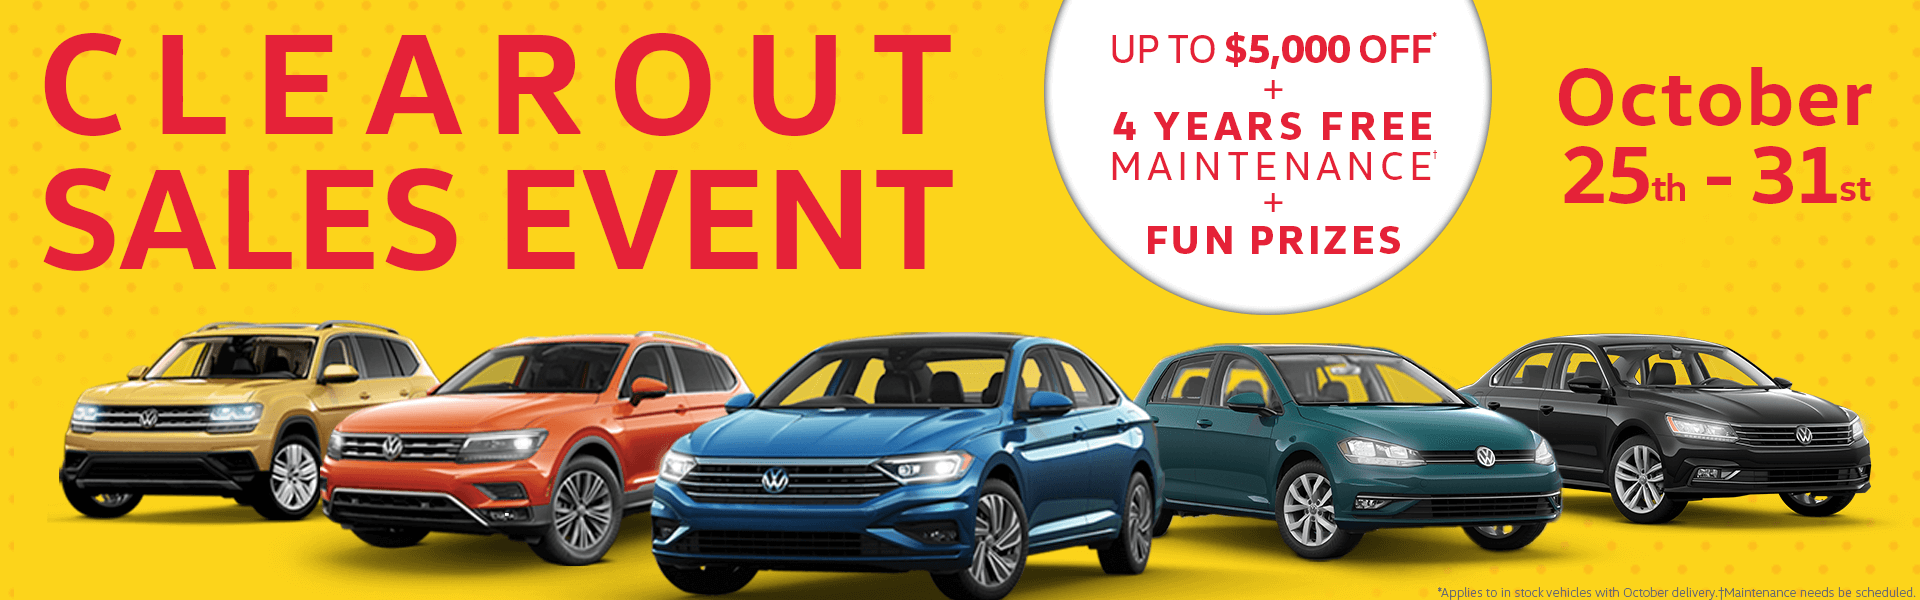 Sales Event at Cowell Volkswagen in Richmond, Metro Vancouver